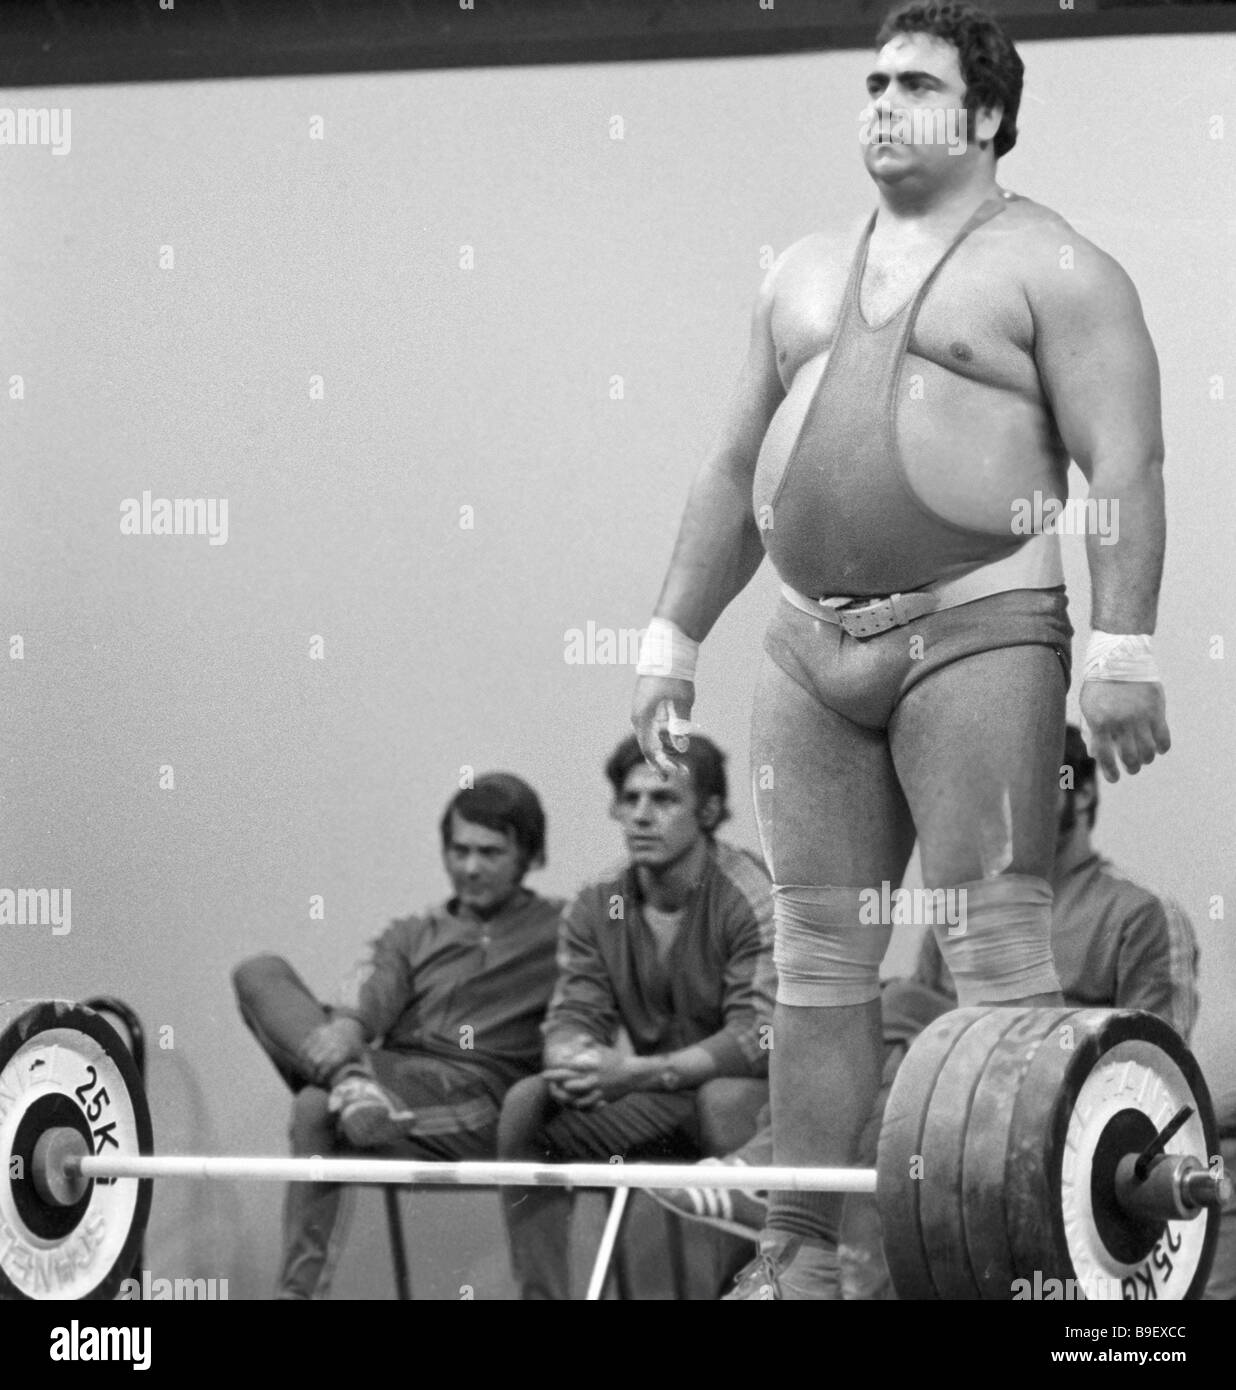 XX Munich Olympics Champion Vasily Alekseyev a Soviet weightlifter ready to break another record - Stock Image